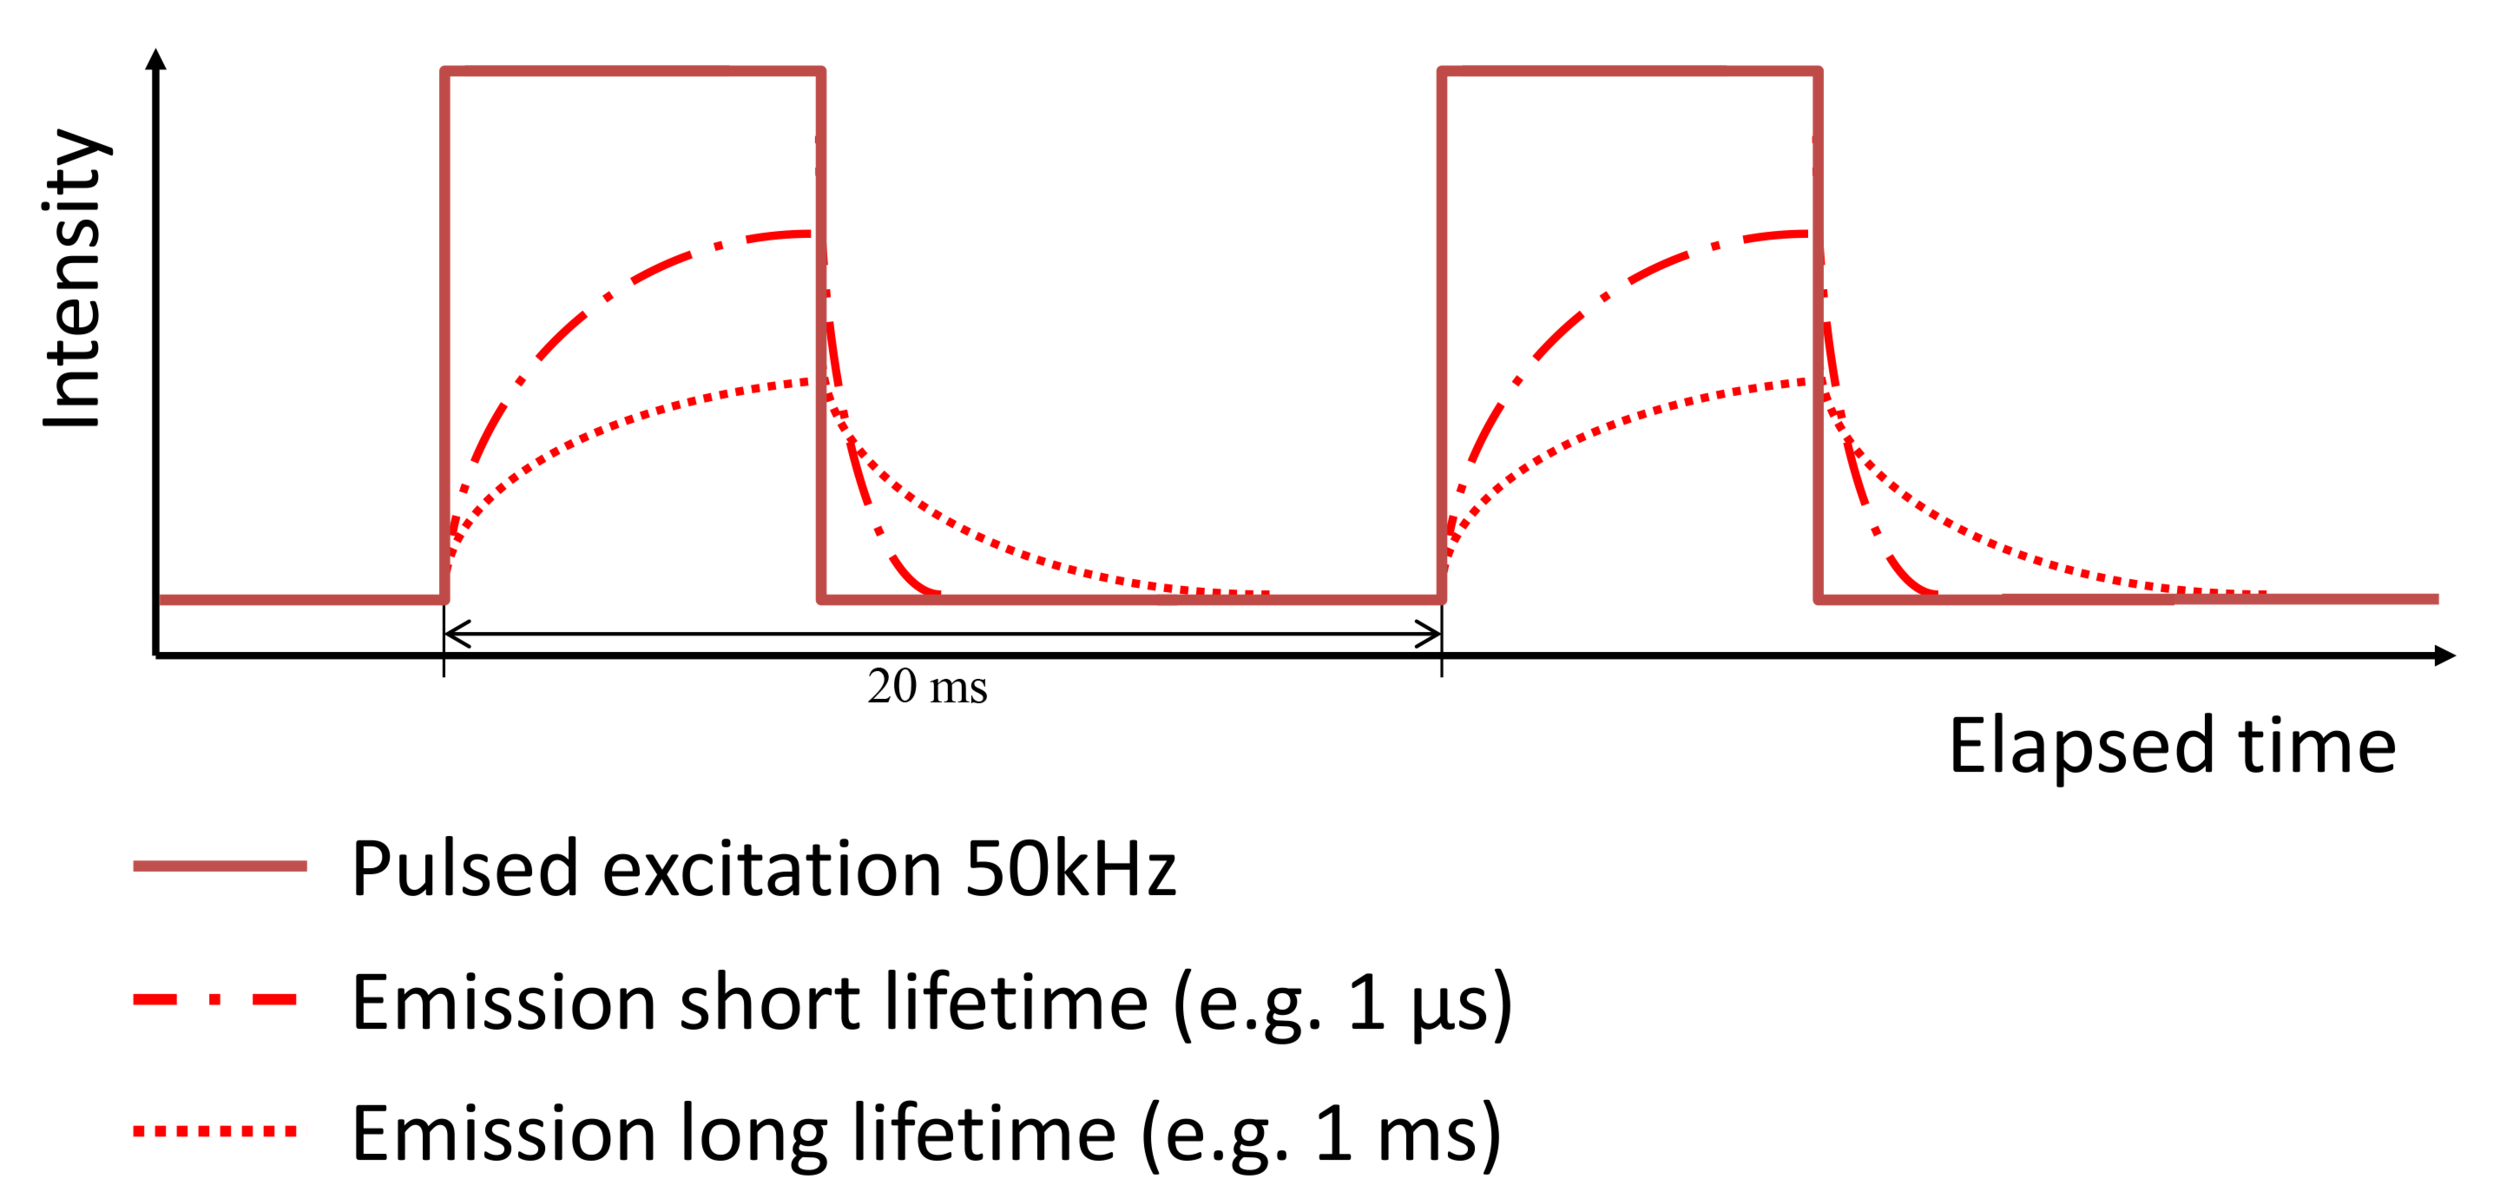 Figure 5. Frequency domain FLIM using a pulsed lightsource results in a block wave excitation and emission pattern.